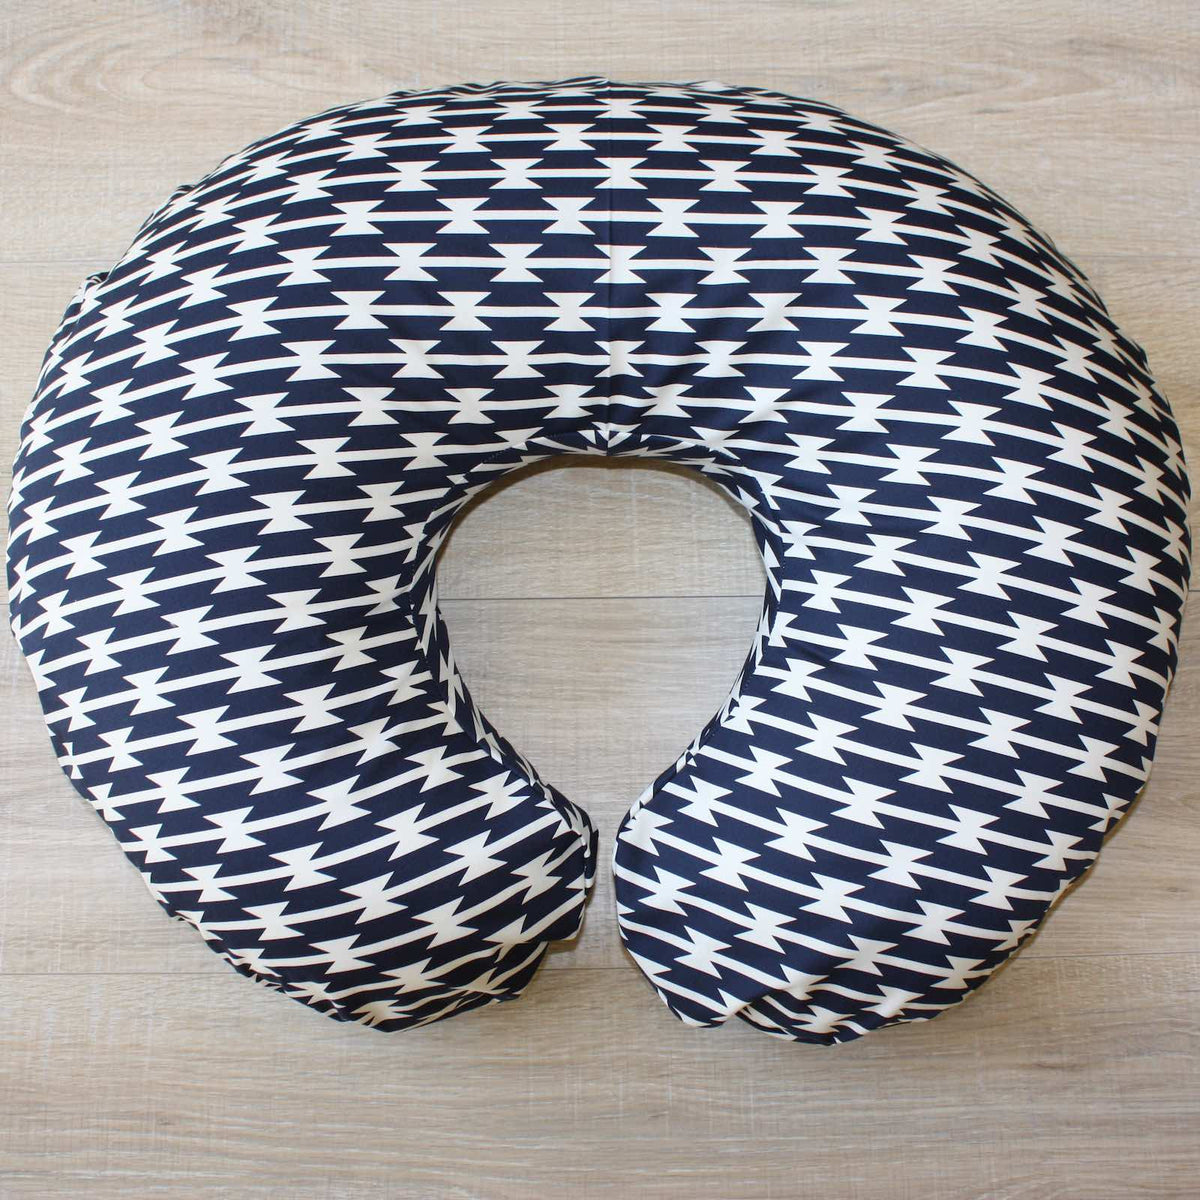 Nursing Pillow Covers